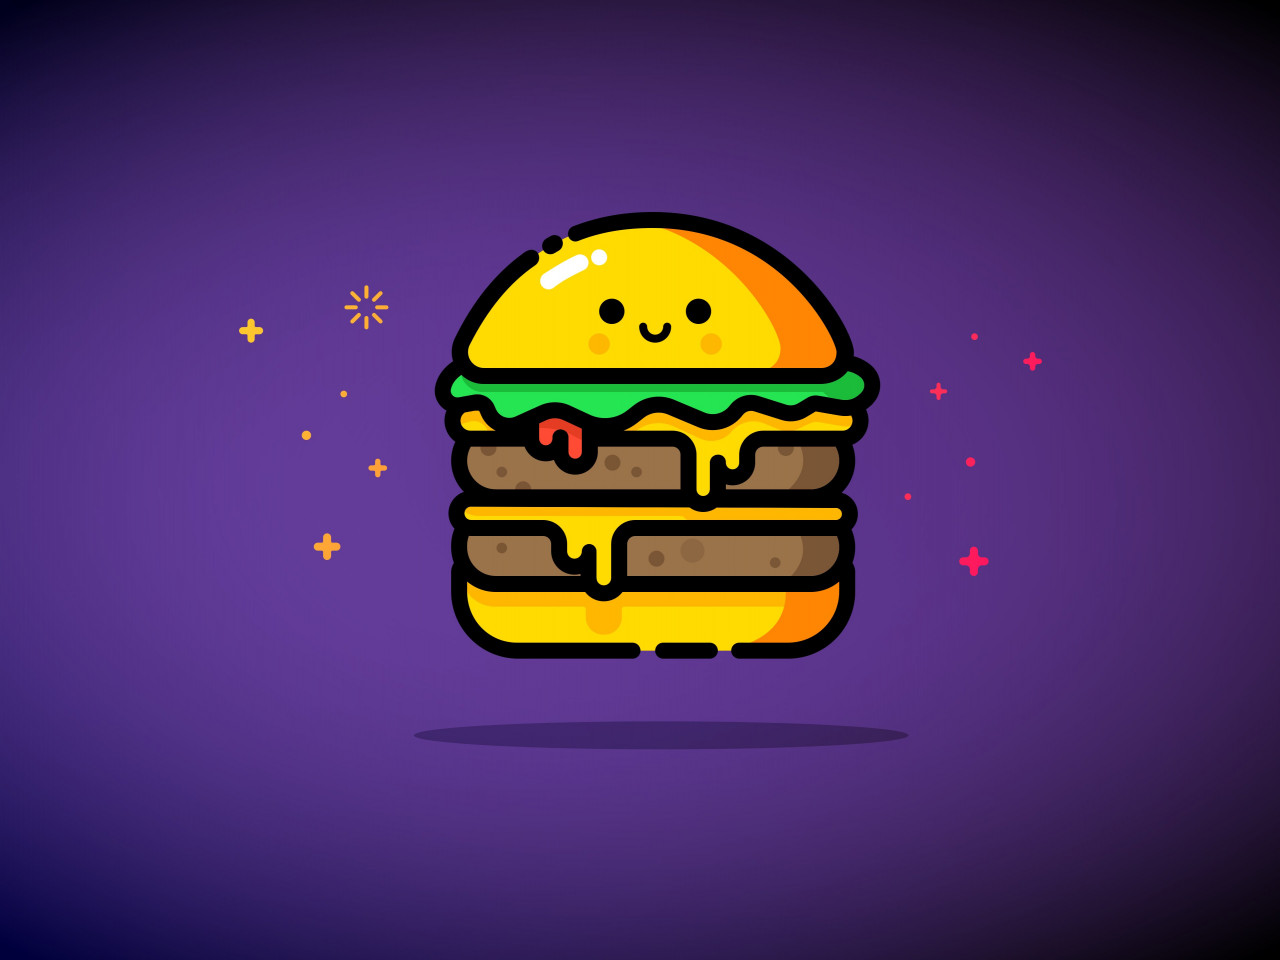 Double cheese wallpaper 1280x960